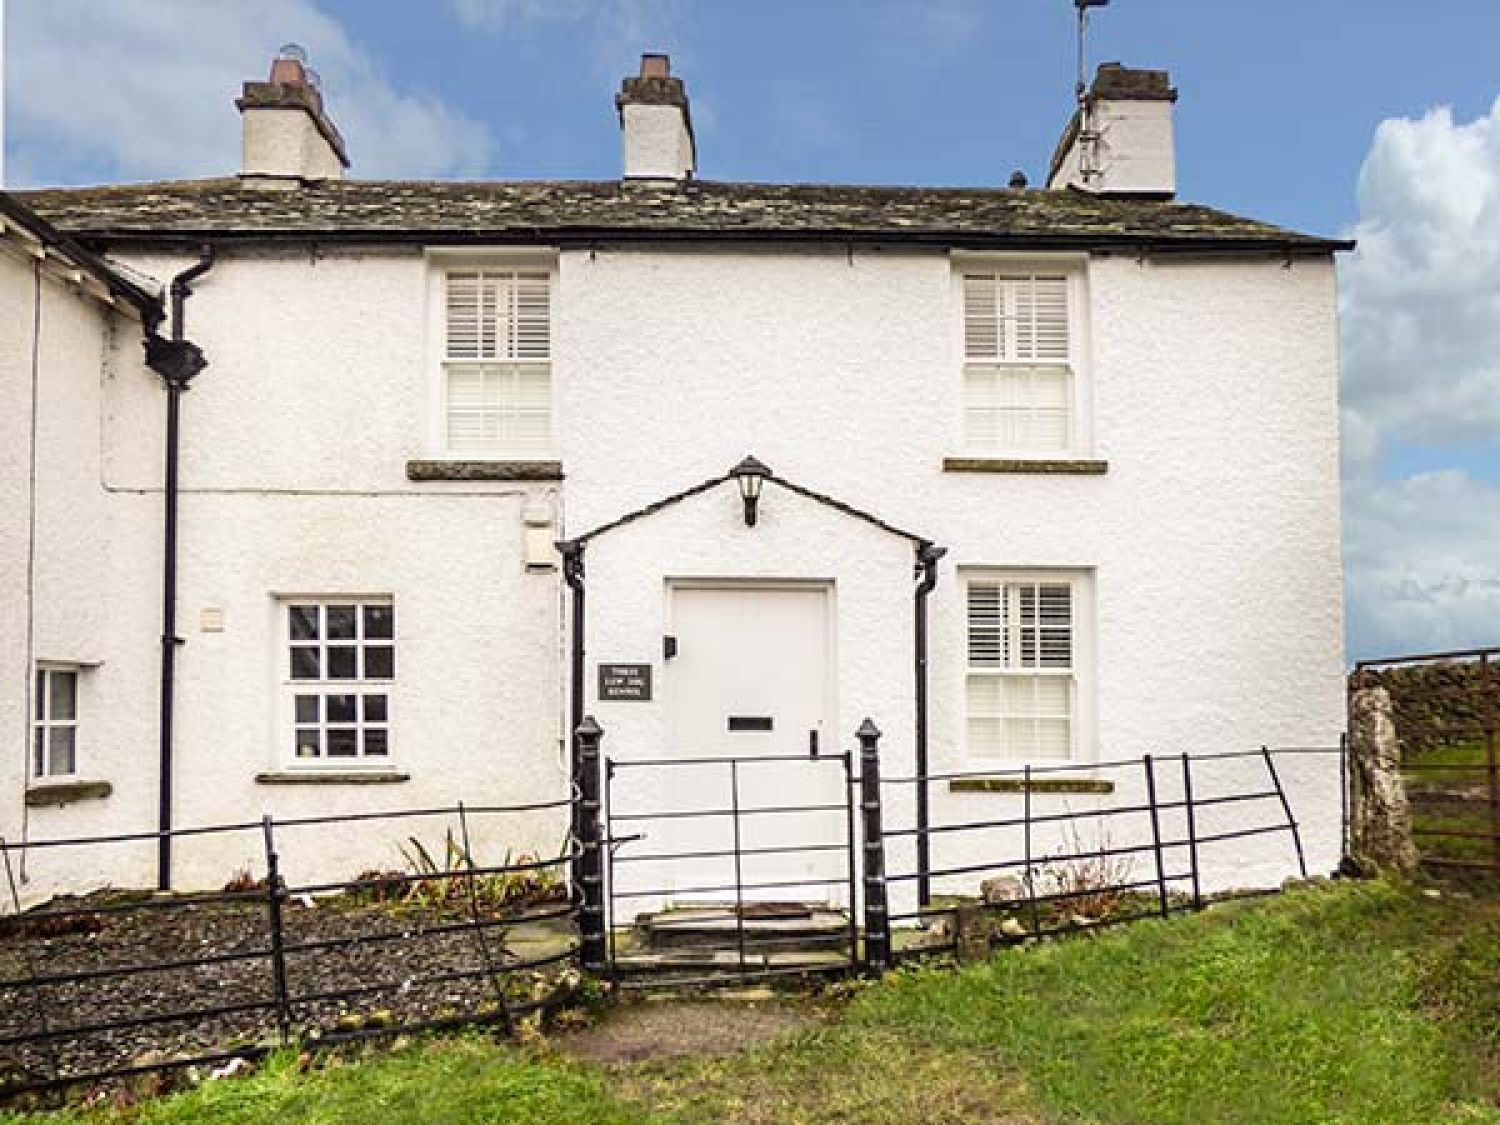 3 Low Dog Kennel - Lake District - 929320 - photo 1